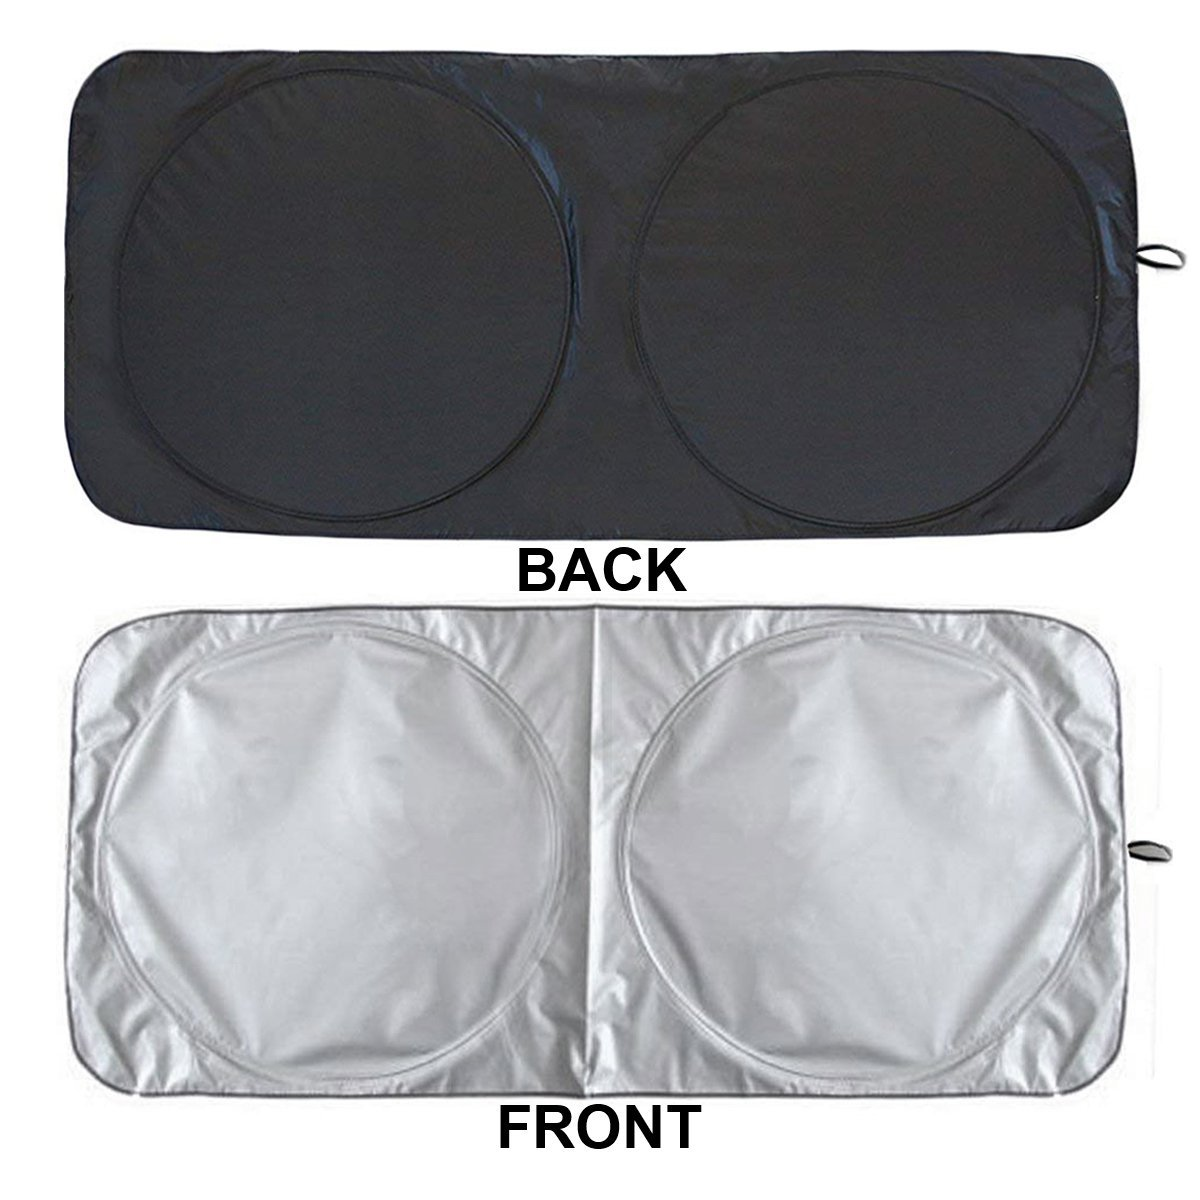 WOT I Car Sun Shade for Windshield-Durable Nylon Heat Block and UV Protection Sunshades Keeps Vehicle Cool Folding Sun Visor Heat and Sun Reflector Car Windshield Sun Shade